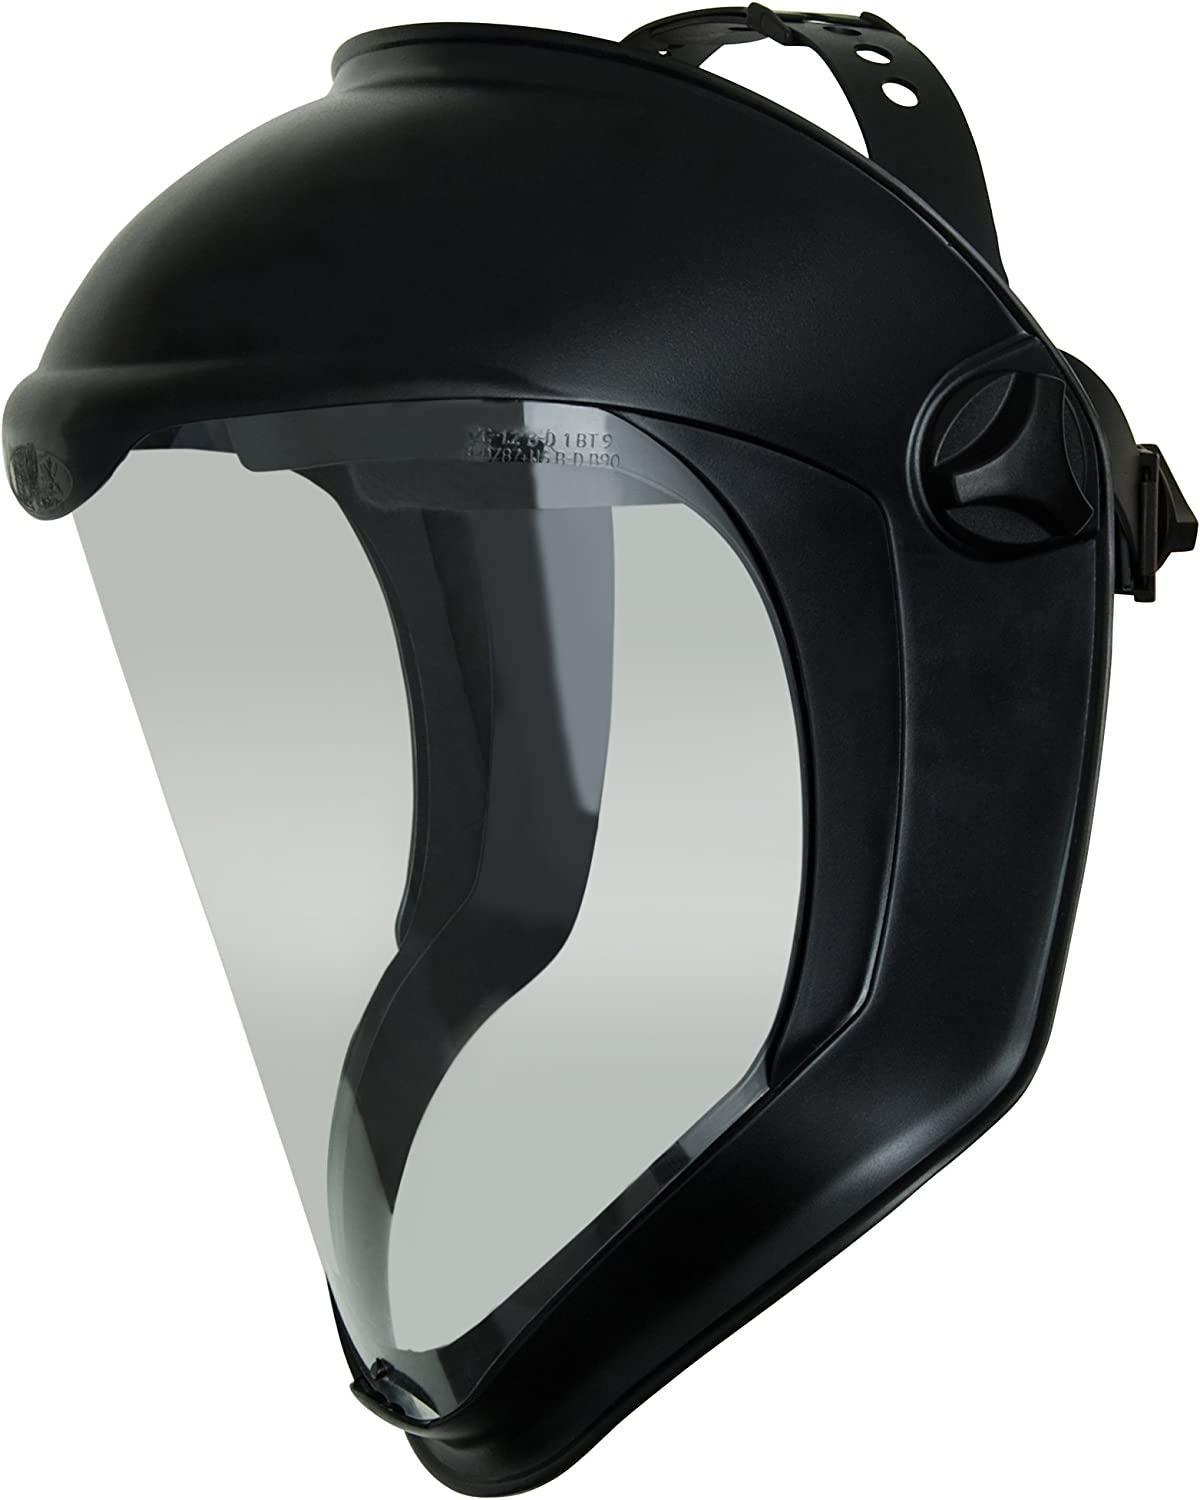 Clear//Black Uvex by Honeywell S8505 Bionic Face Shield with Hard Hat Adapter